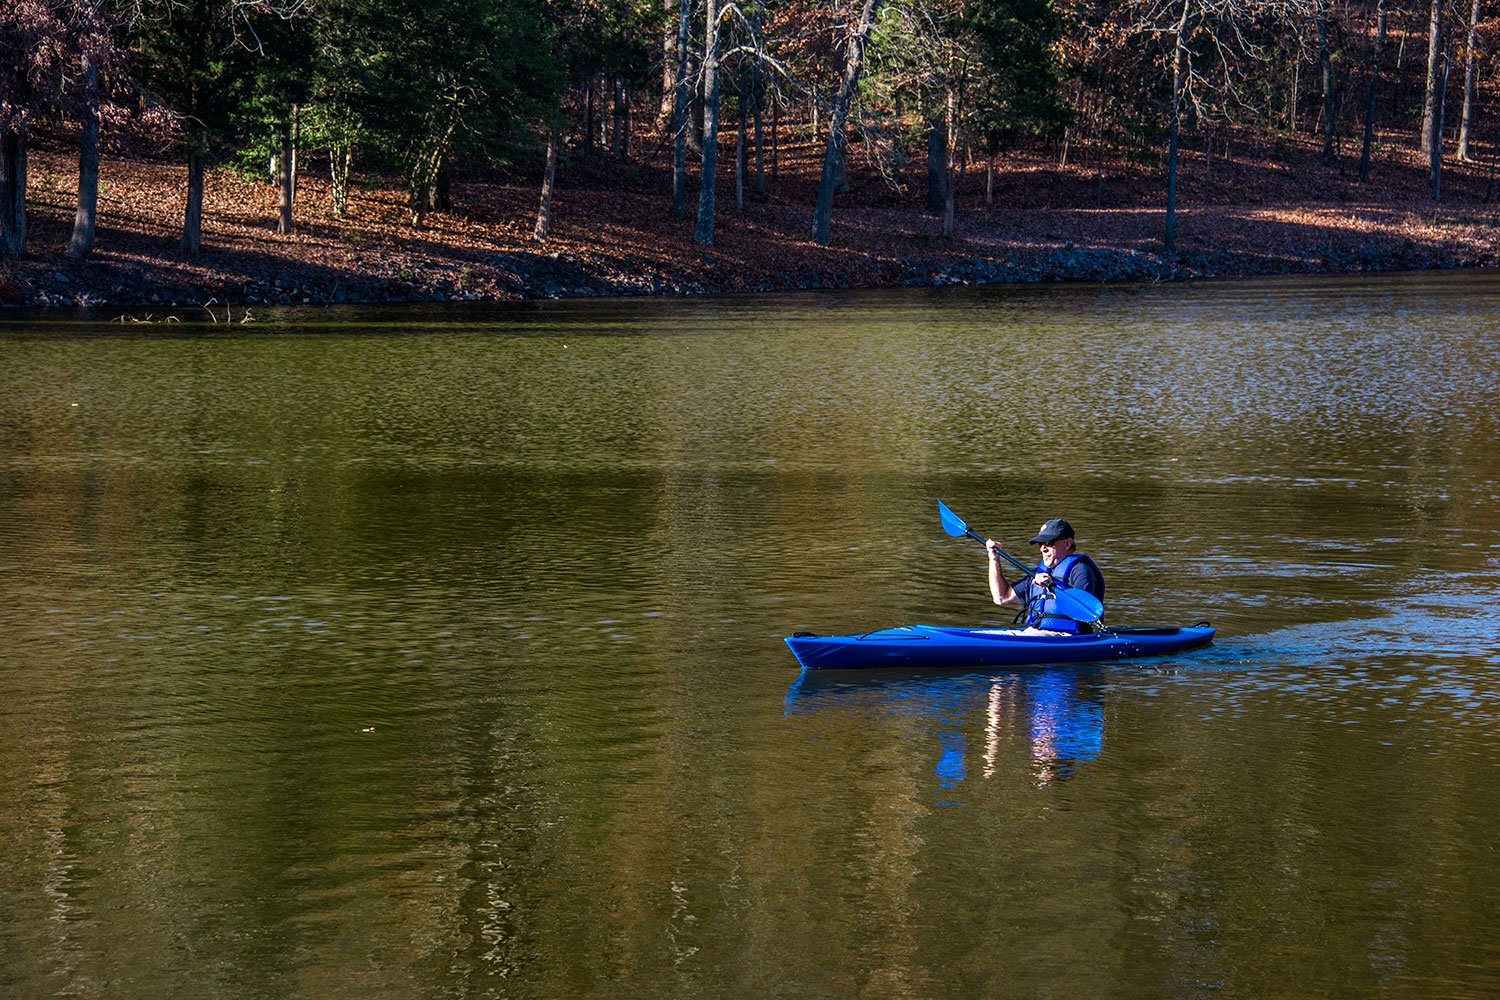 Kayaker on Lake Wylie near South shore in McLean